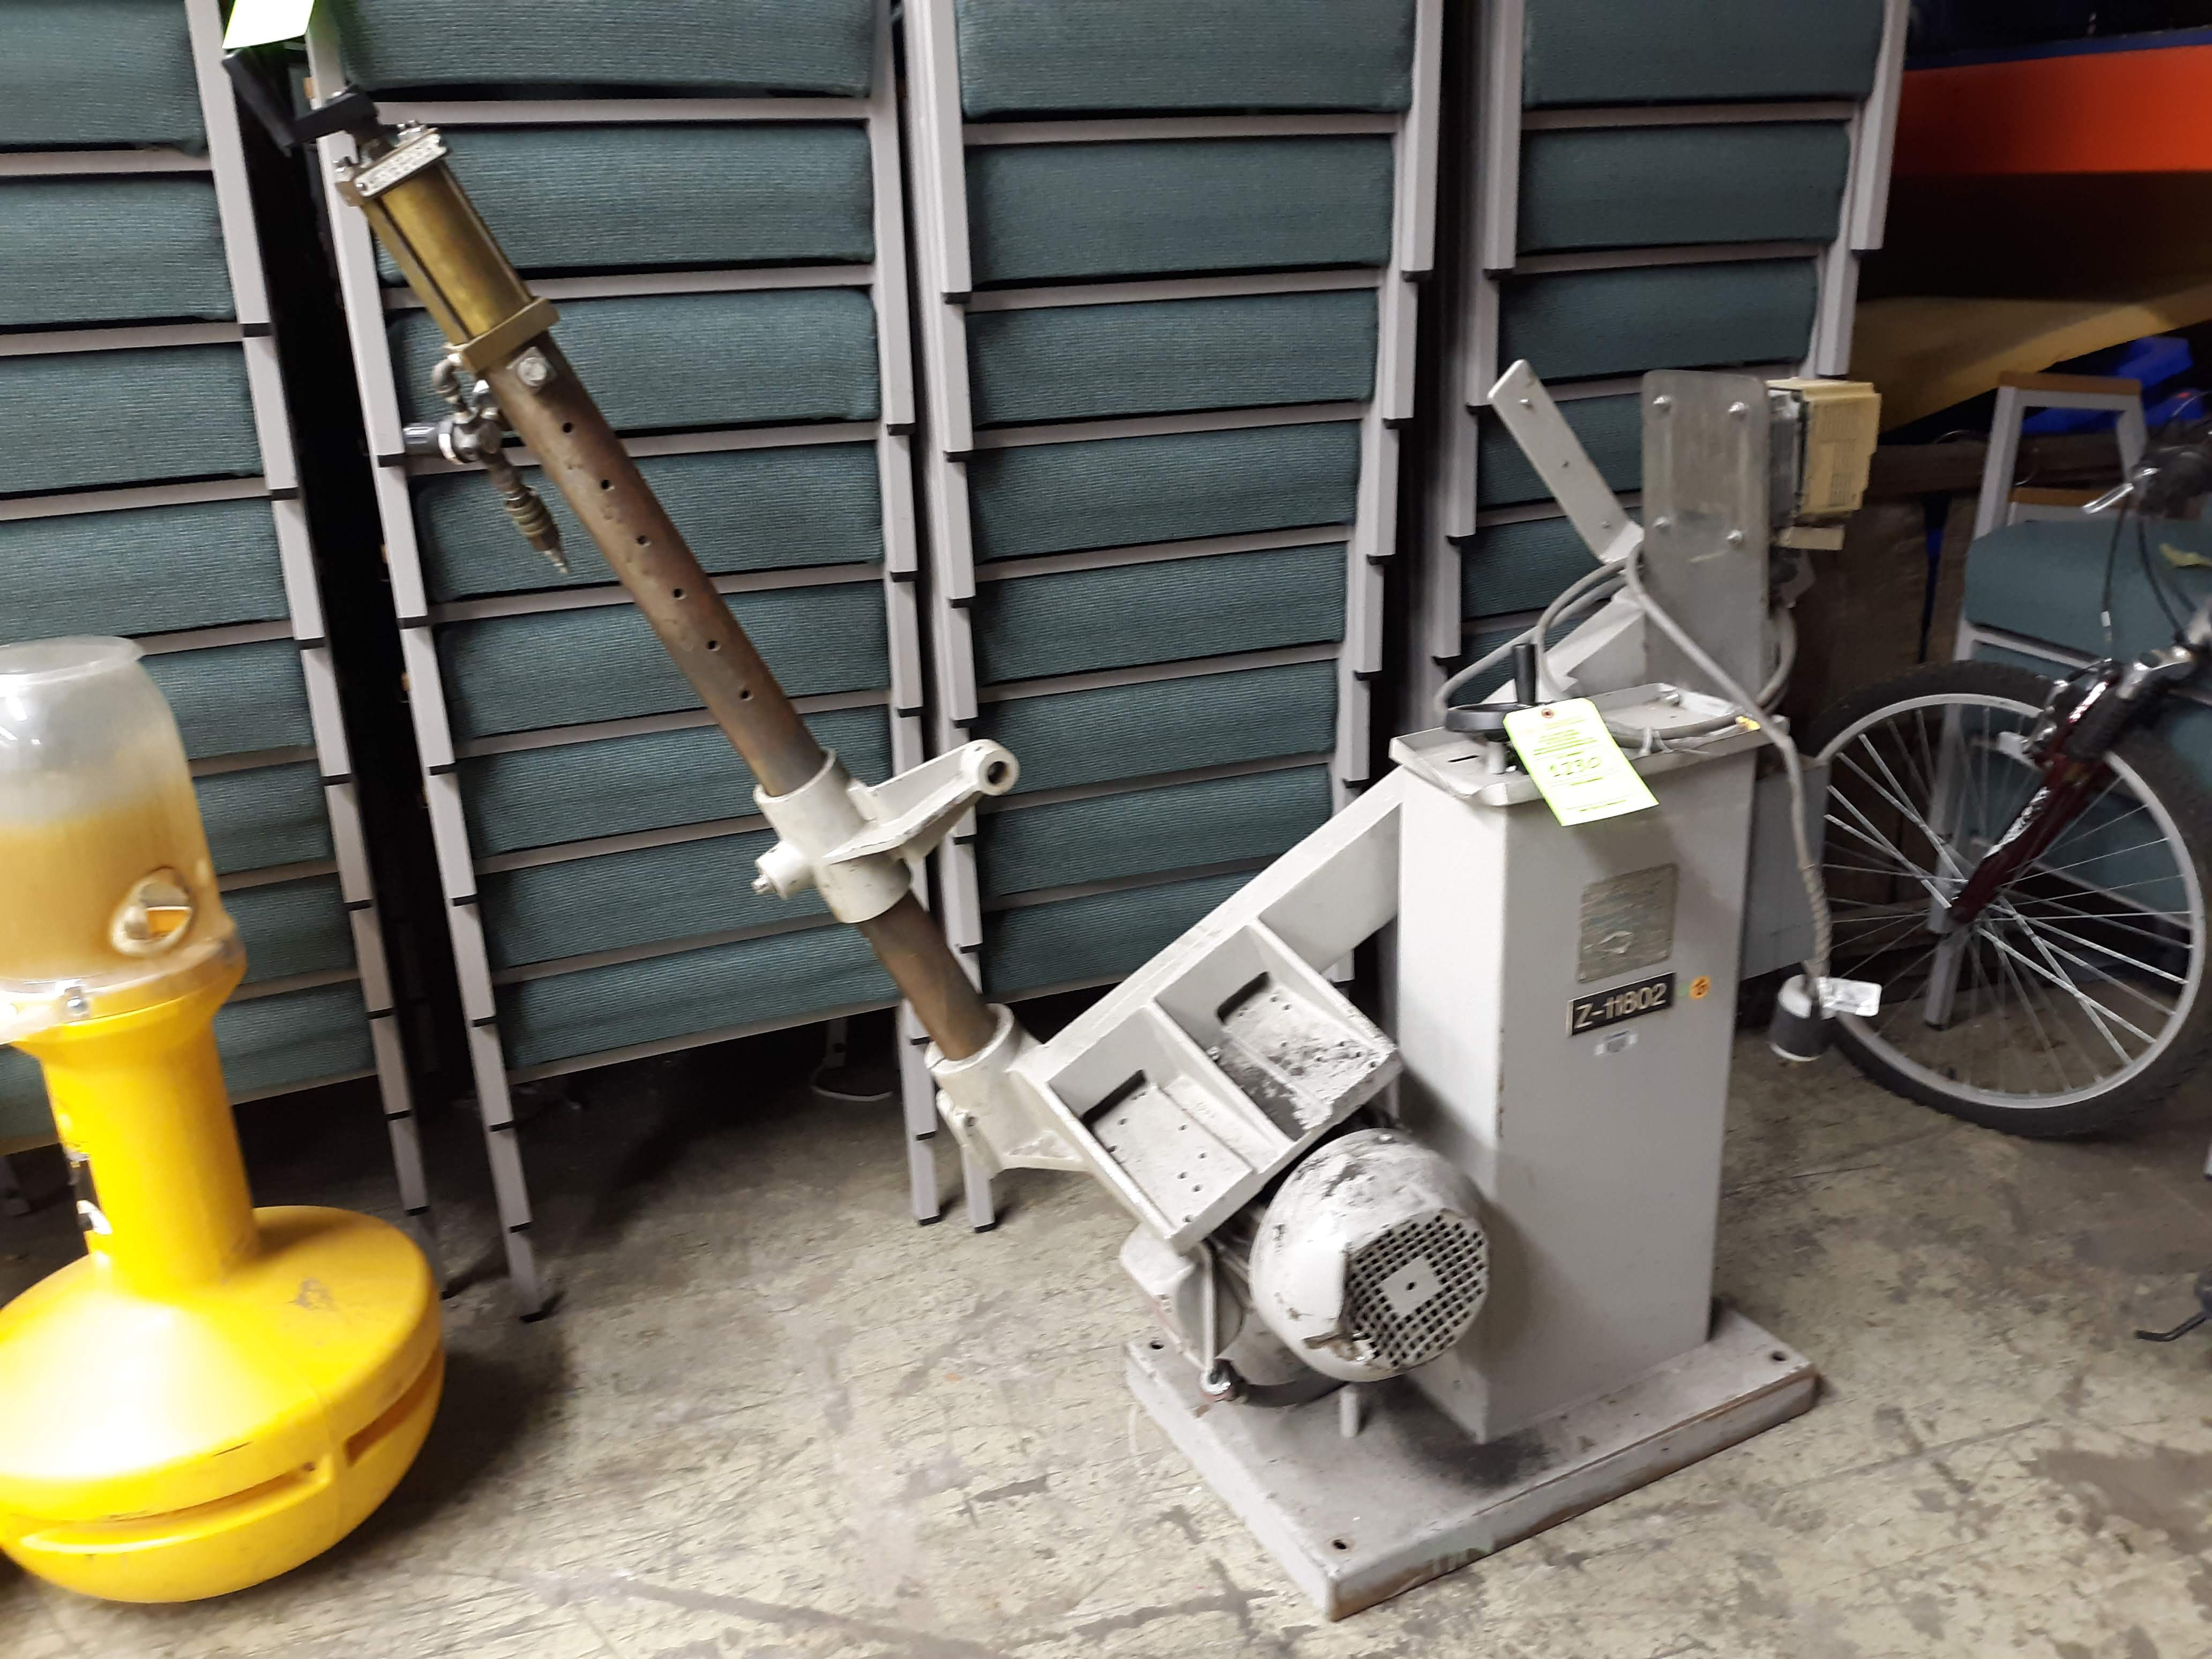 HAMMOND ABRASIVE BELT GRINDE MODEL-DBG-132 S#4066 3HP/1780RPM/3PH/60HZ(LOCATED AT: 433 COUNCIL